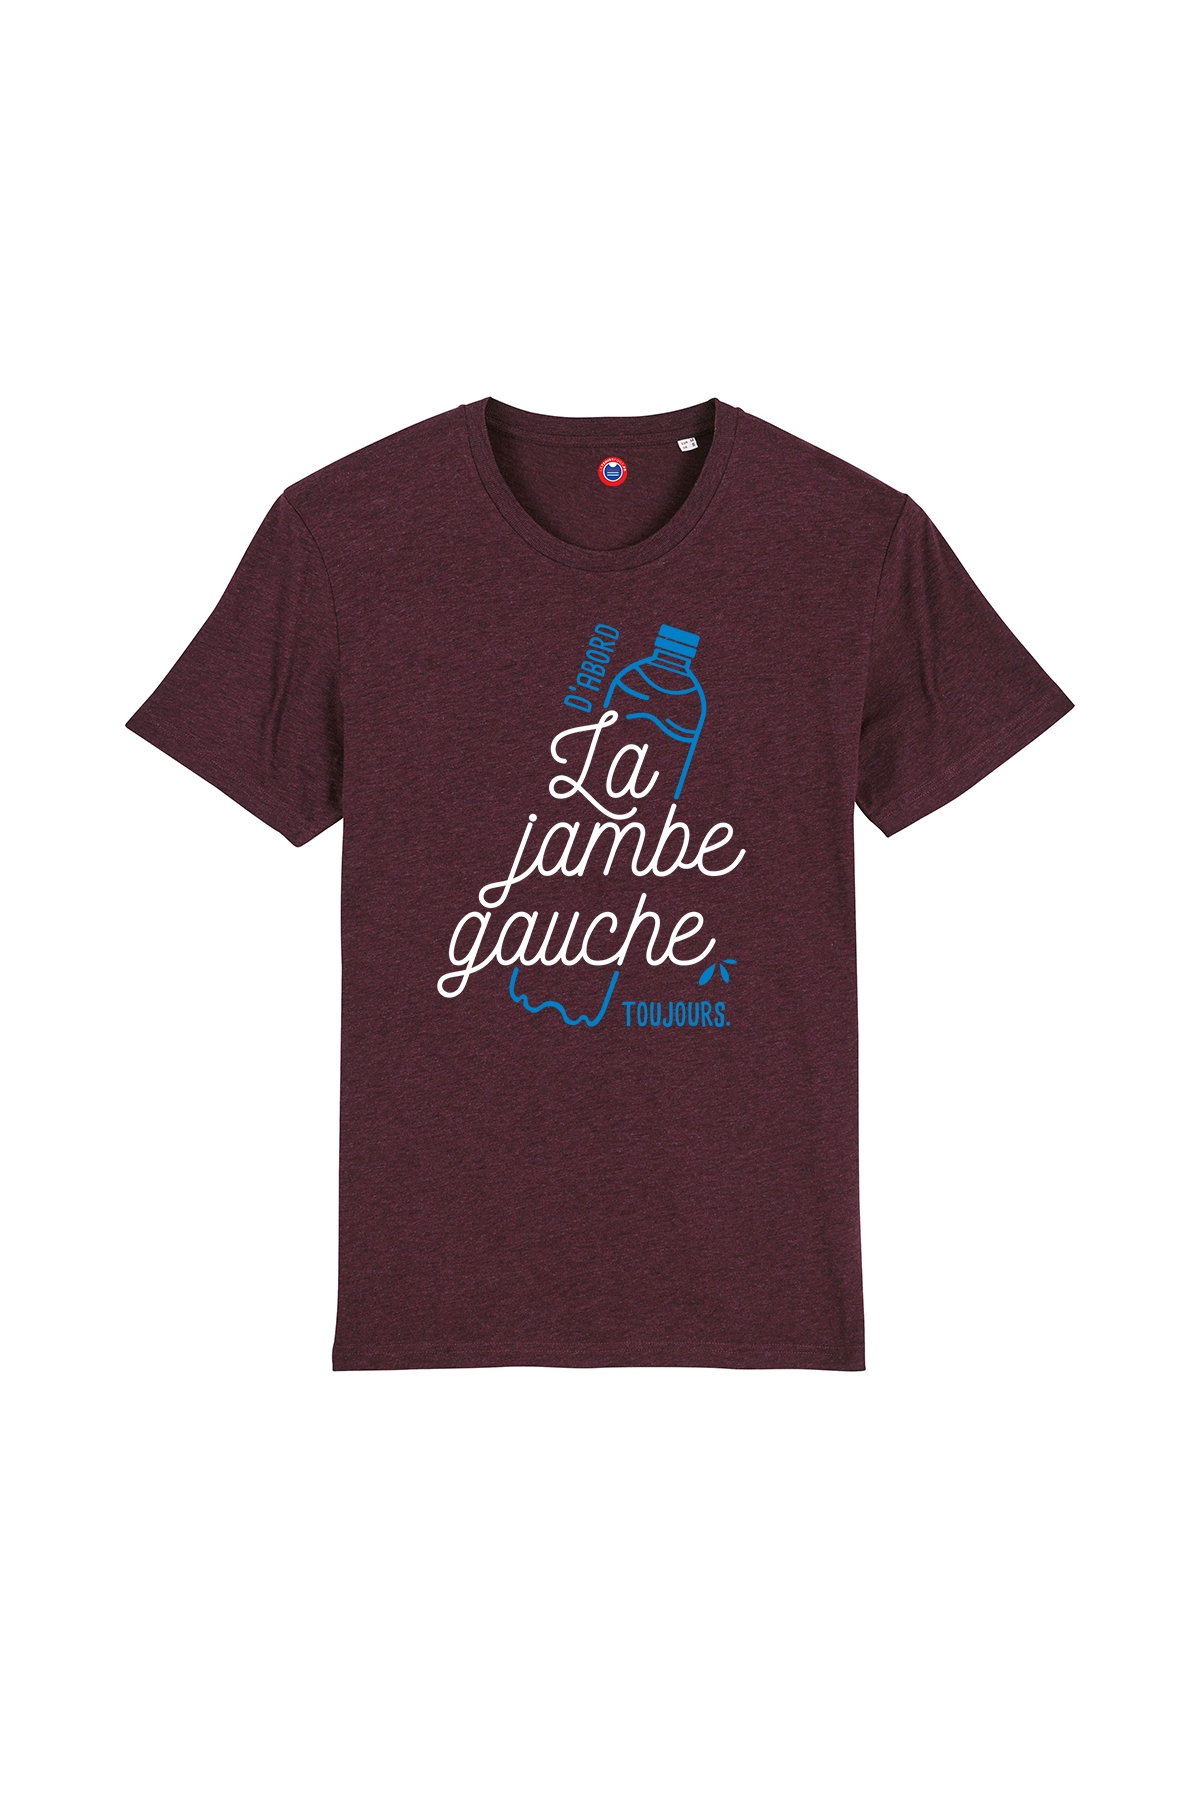 T-shirt La Jambe Gauche, toujours - Taille S - Soldes